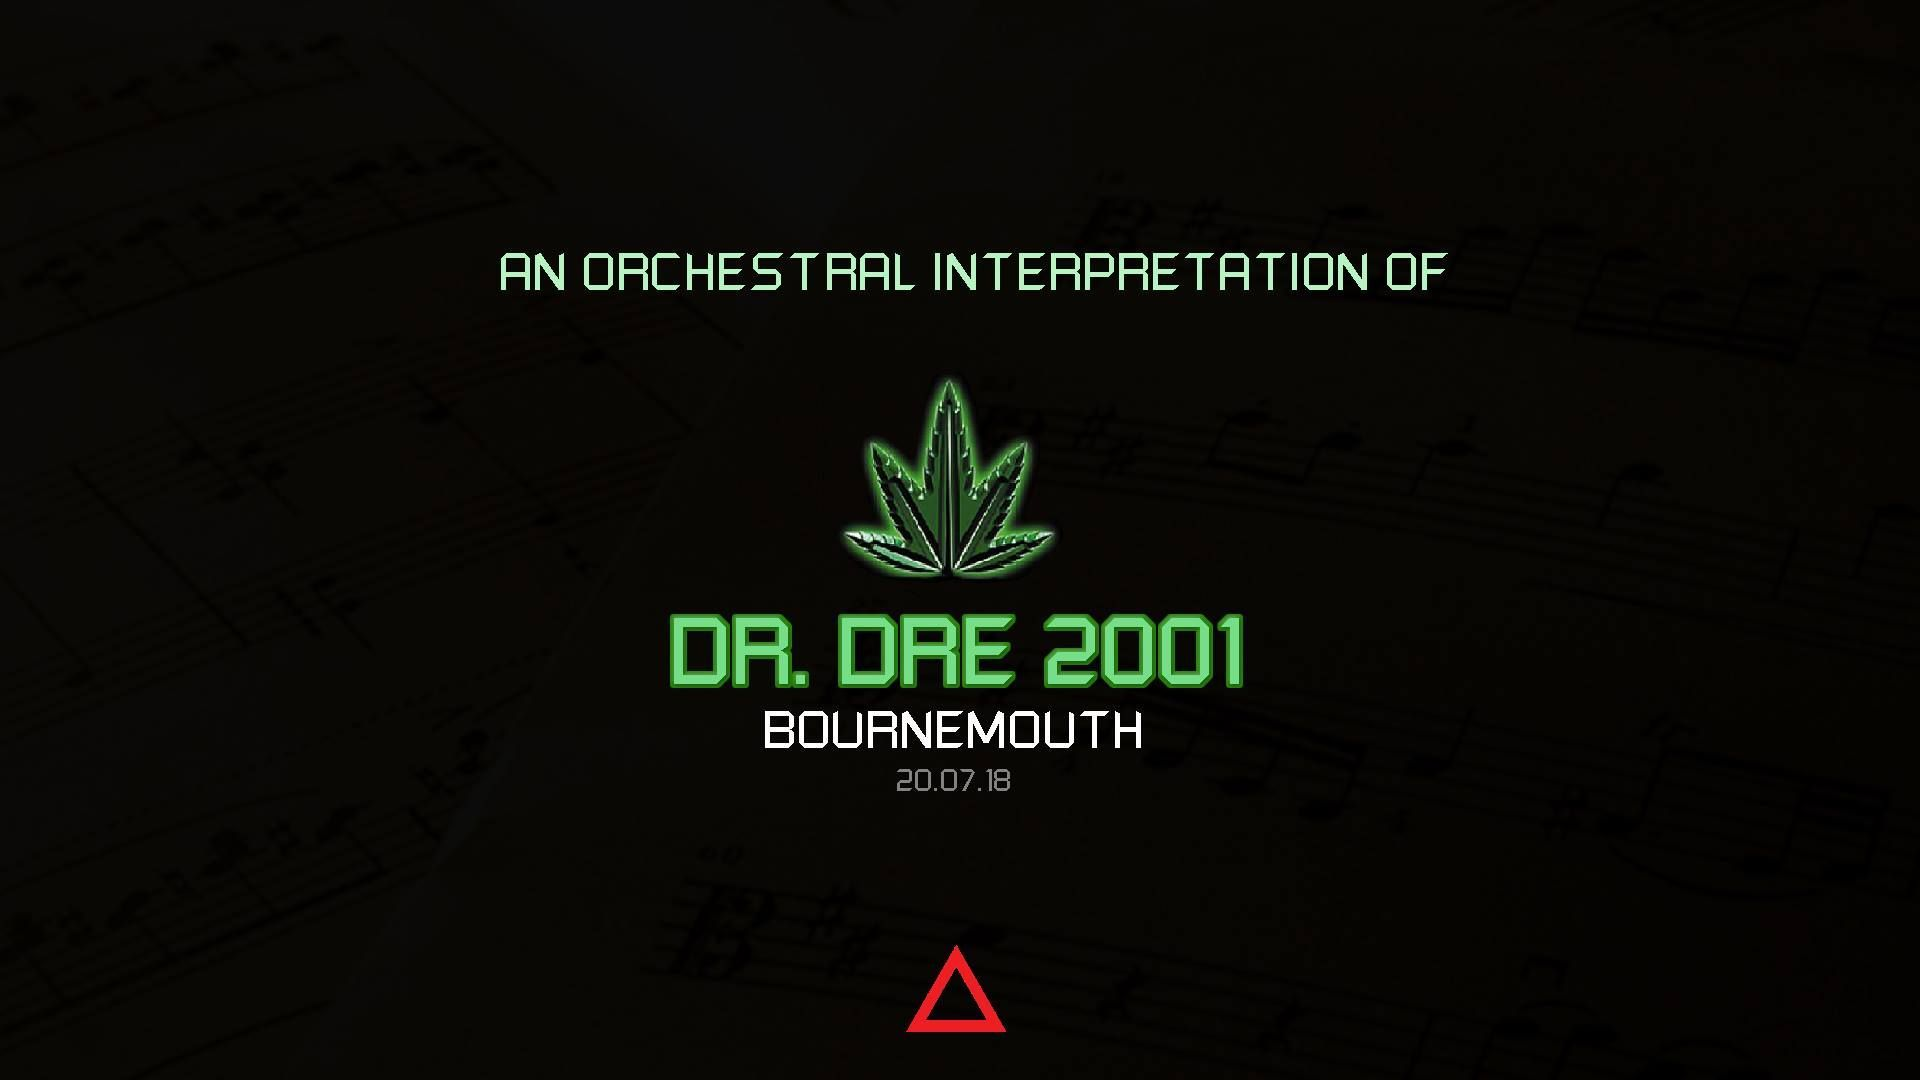 Dr Dre orchestral rendition at Halo